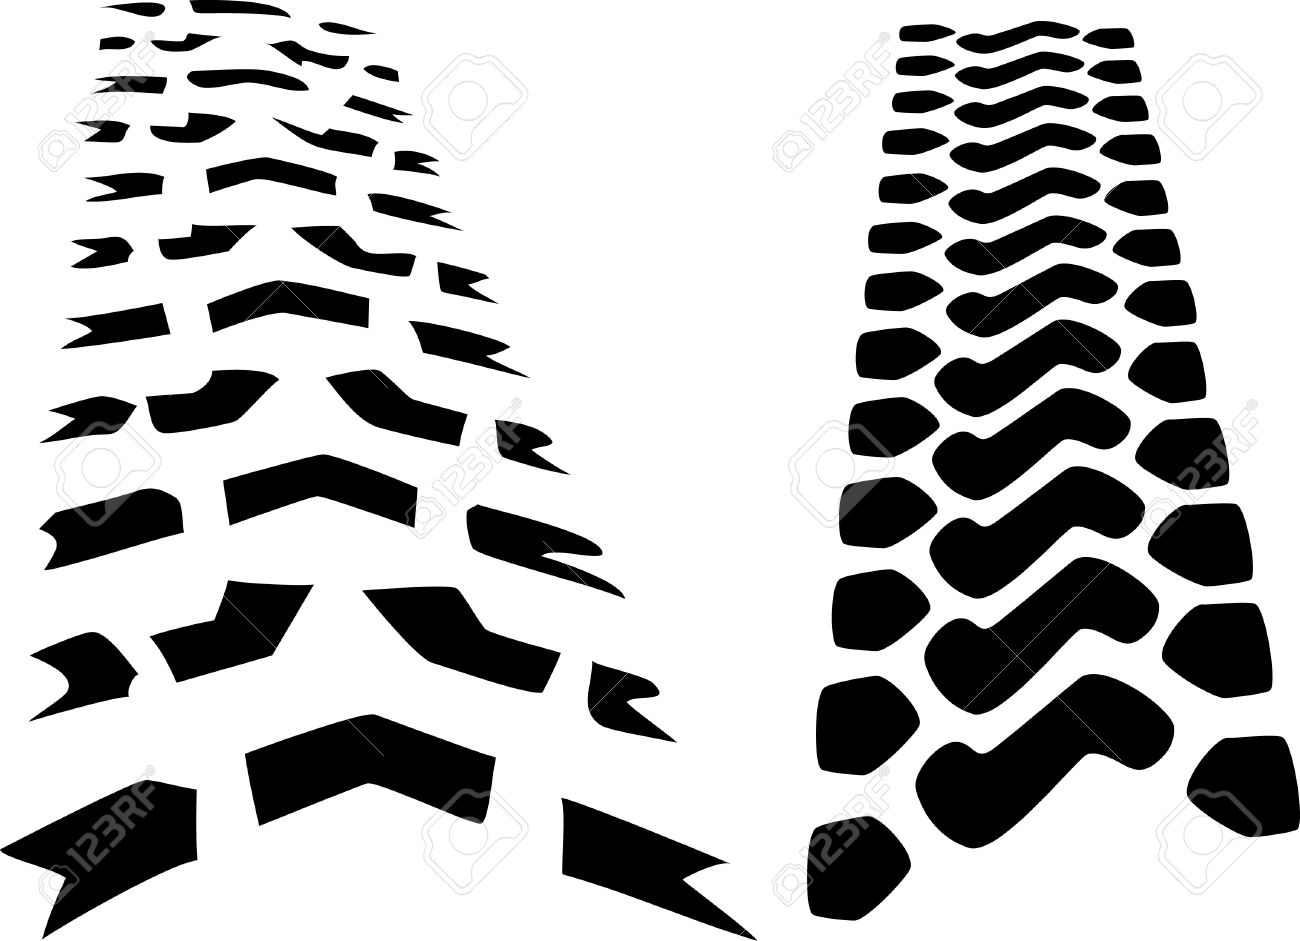 tracks tractor tires royalty free cliparts vectors and stock rh 123rf com tire track vector png bike tire track vector